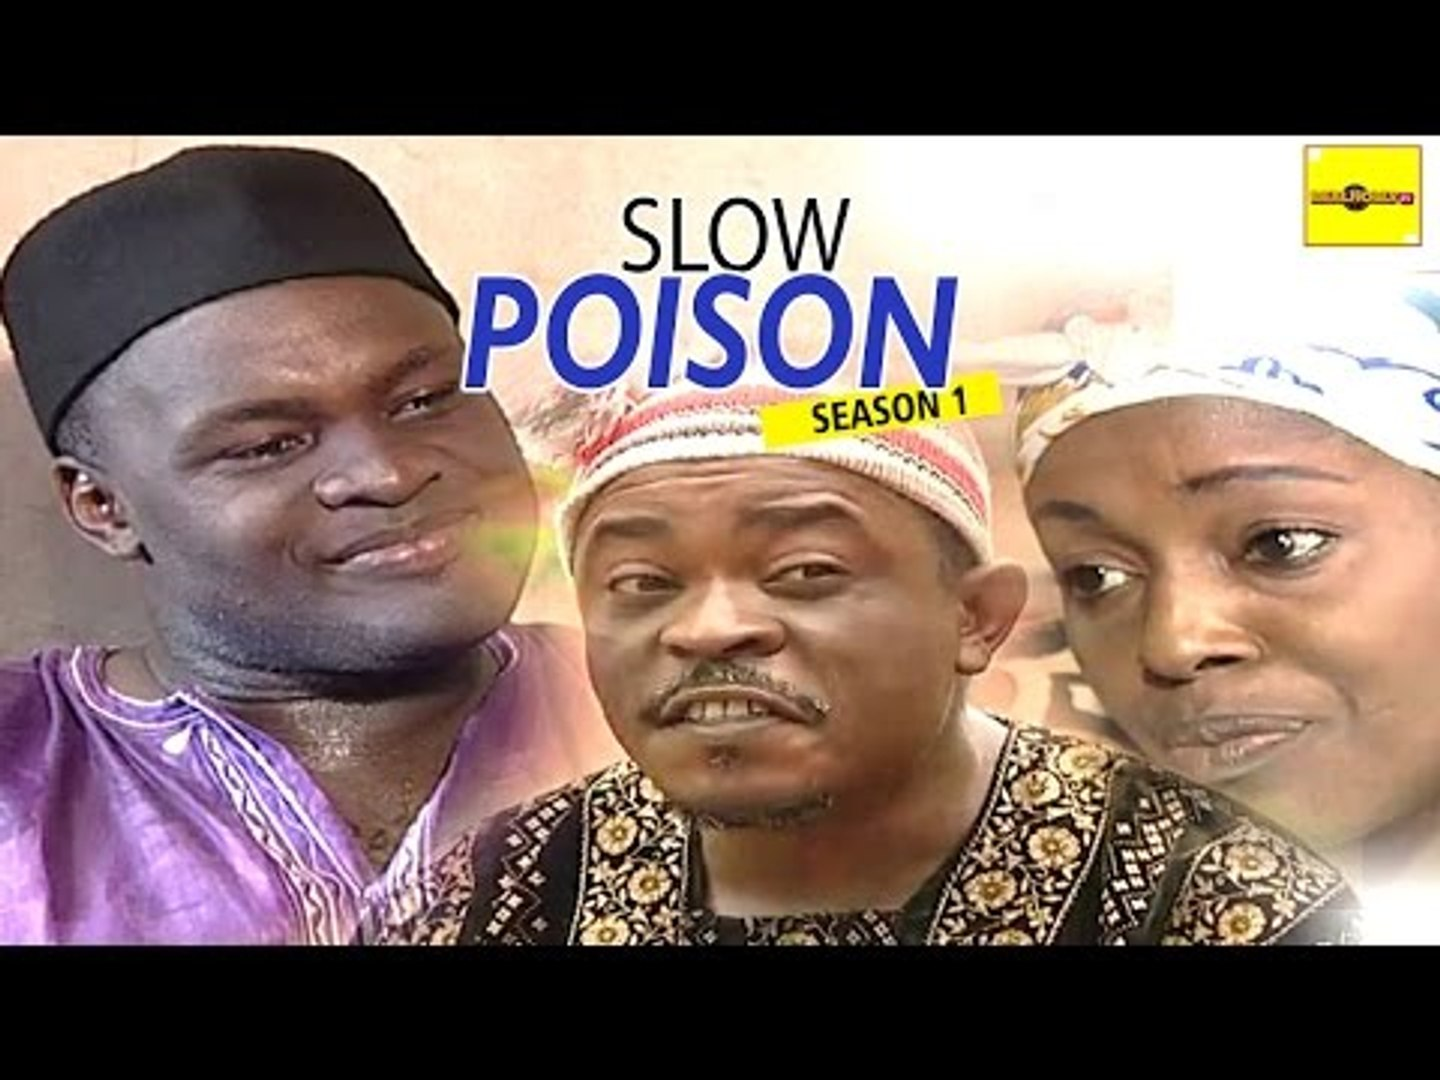 Nigerian Nollywood Movies - Slow Poison 2